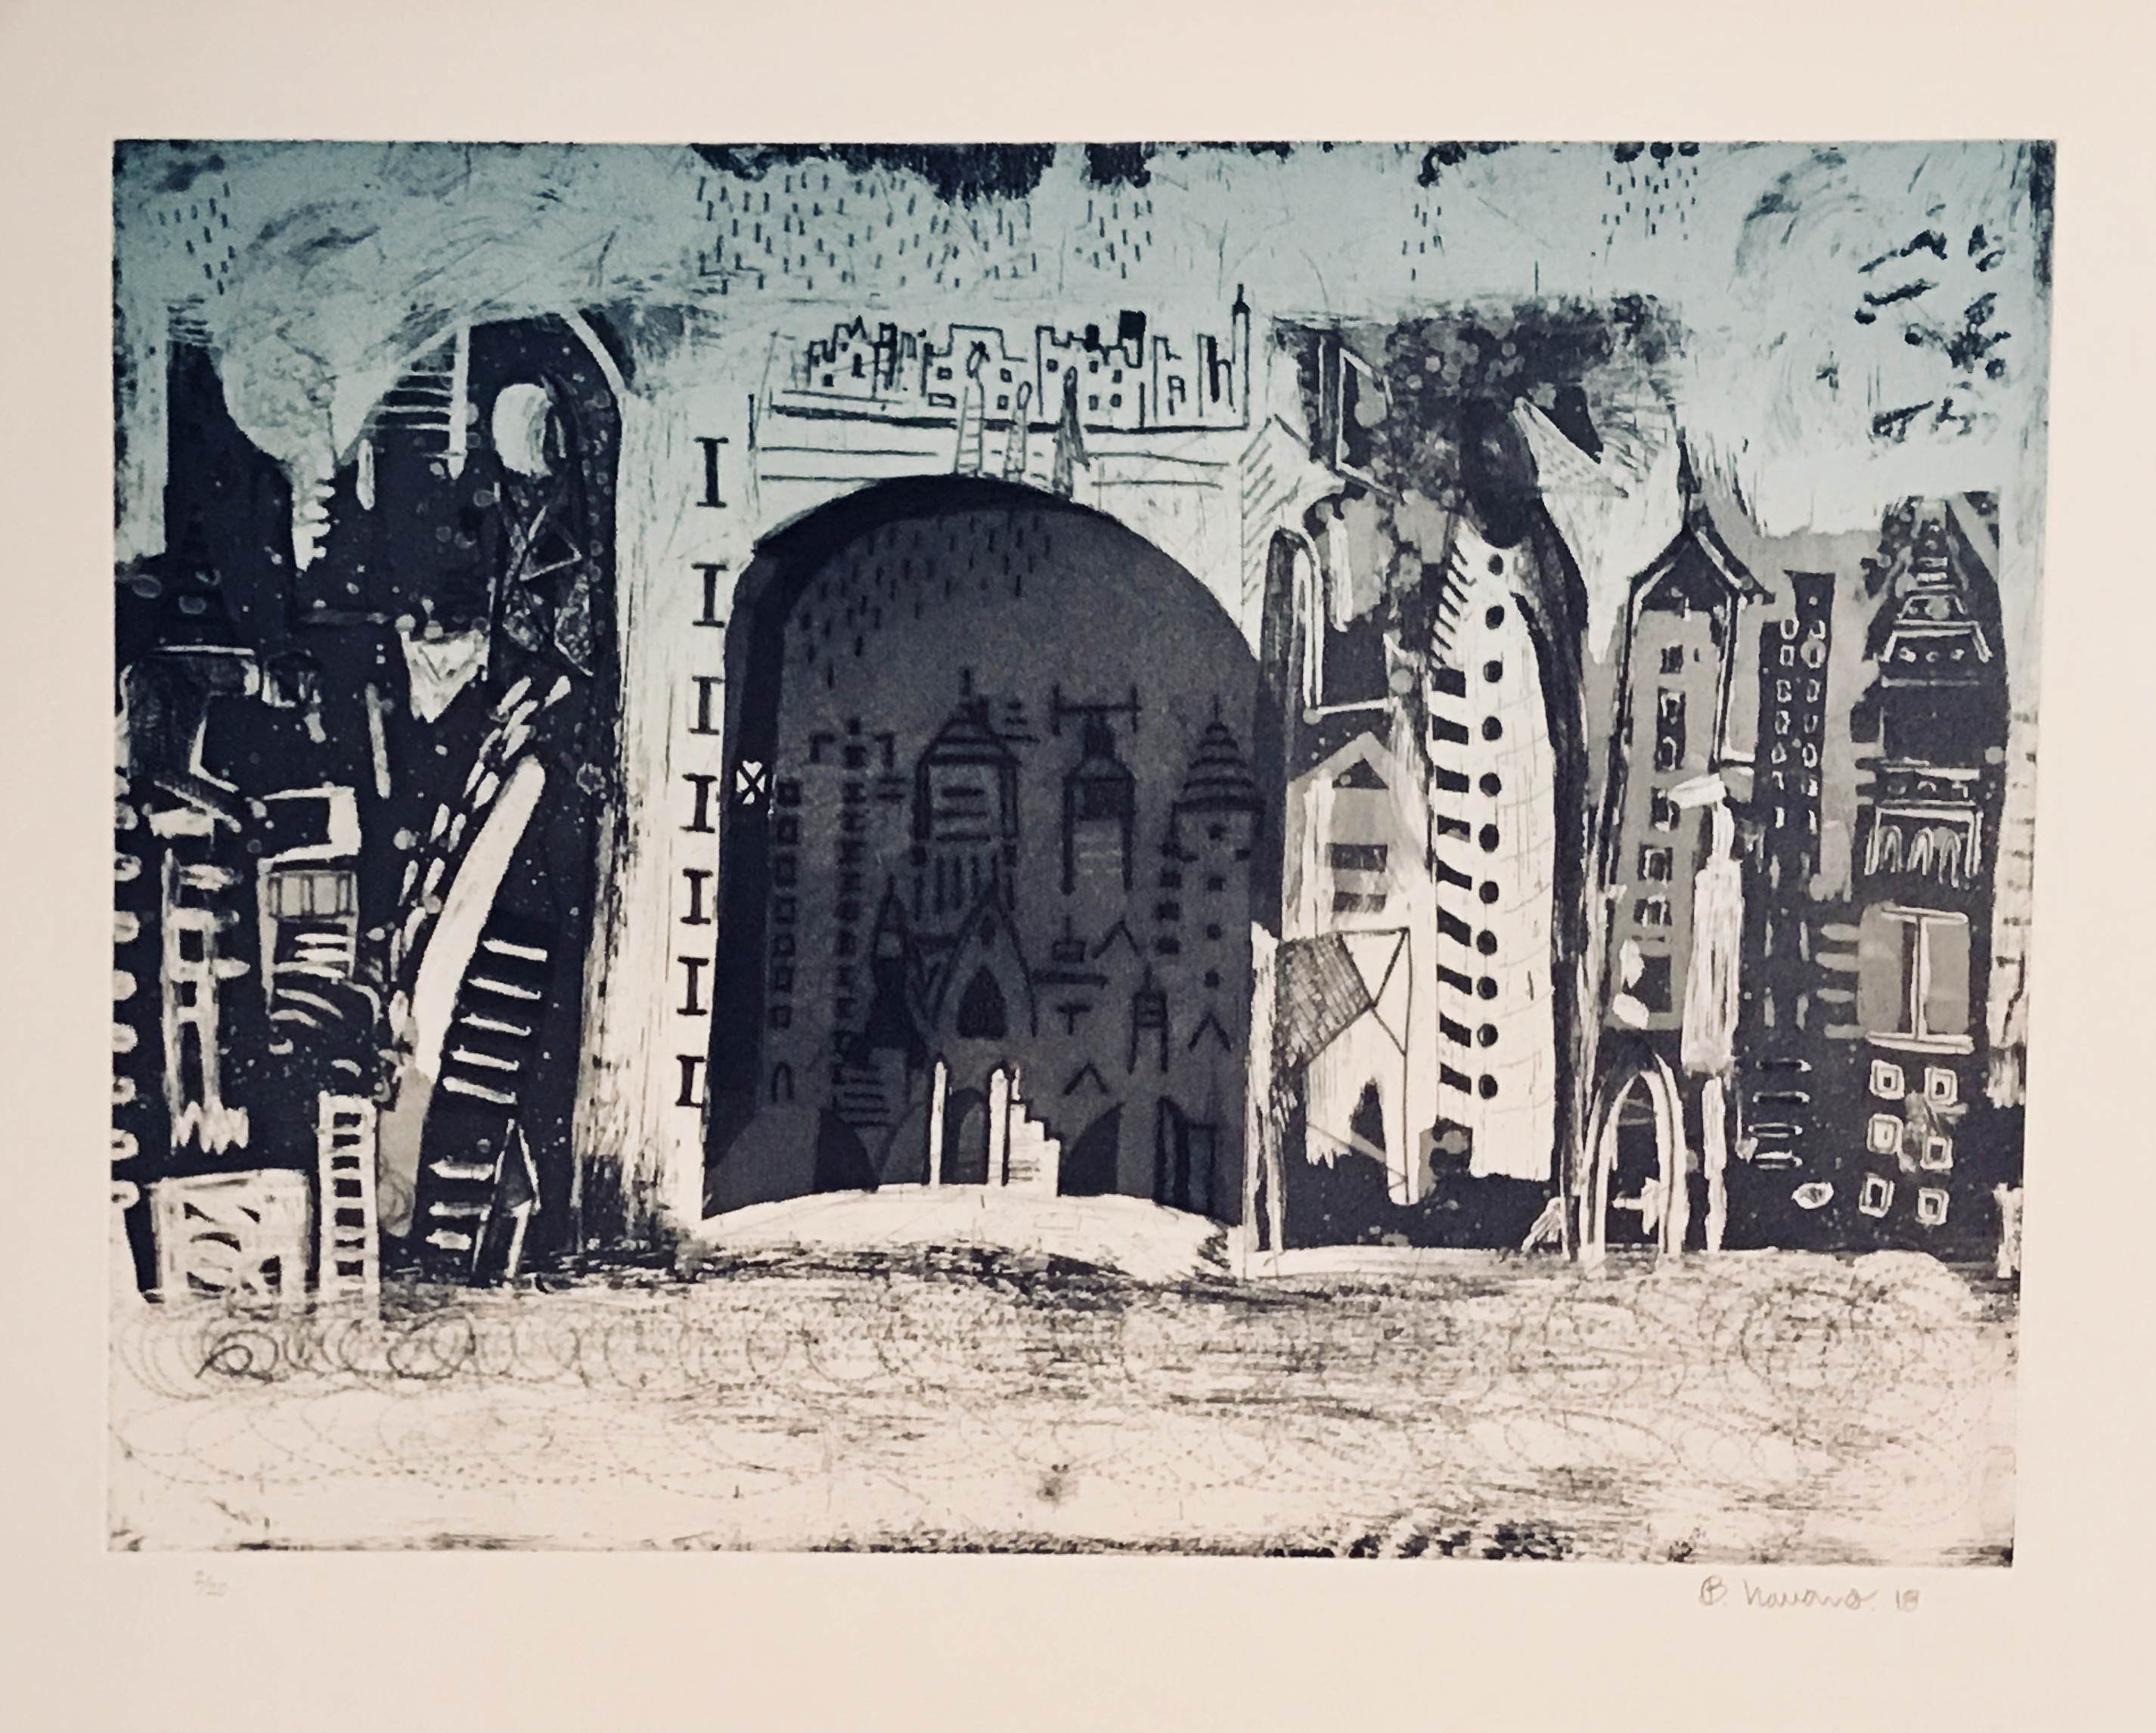 Title: Diurno (Daytime) Drypoint and Aquatint on Deponte paper 350 gr Edition of 20  Plate size : 17.71 x 23.7 inches  Paper: 22.45 x 27.75 inches